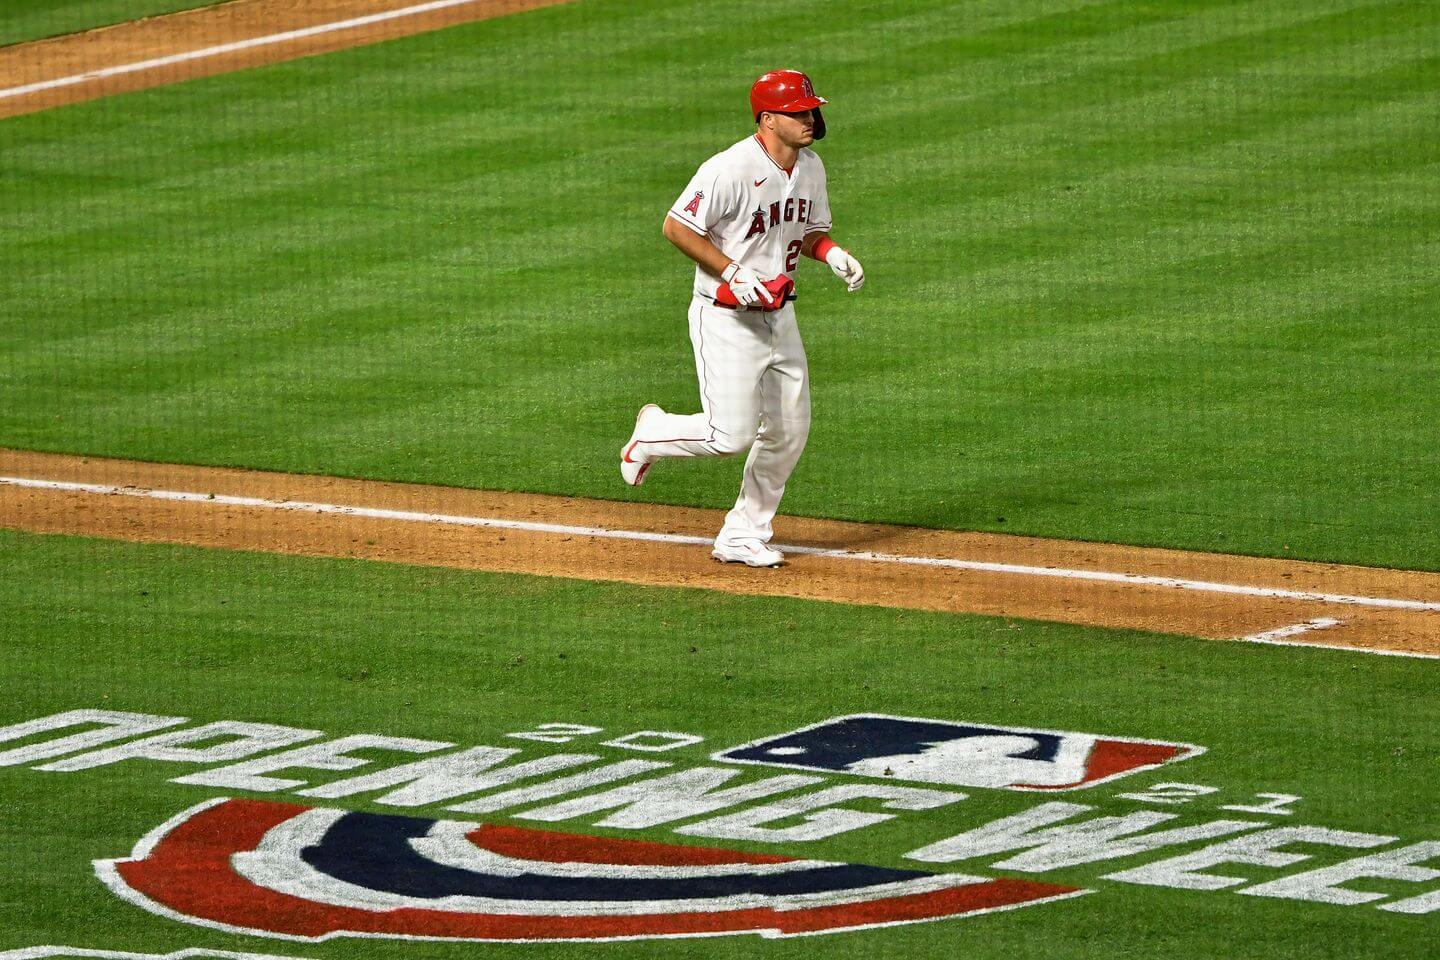 Trout, Pujols set up Angels come-from-behind victory